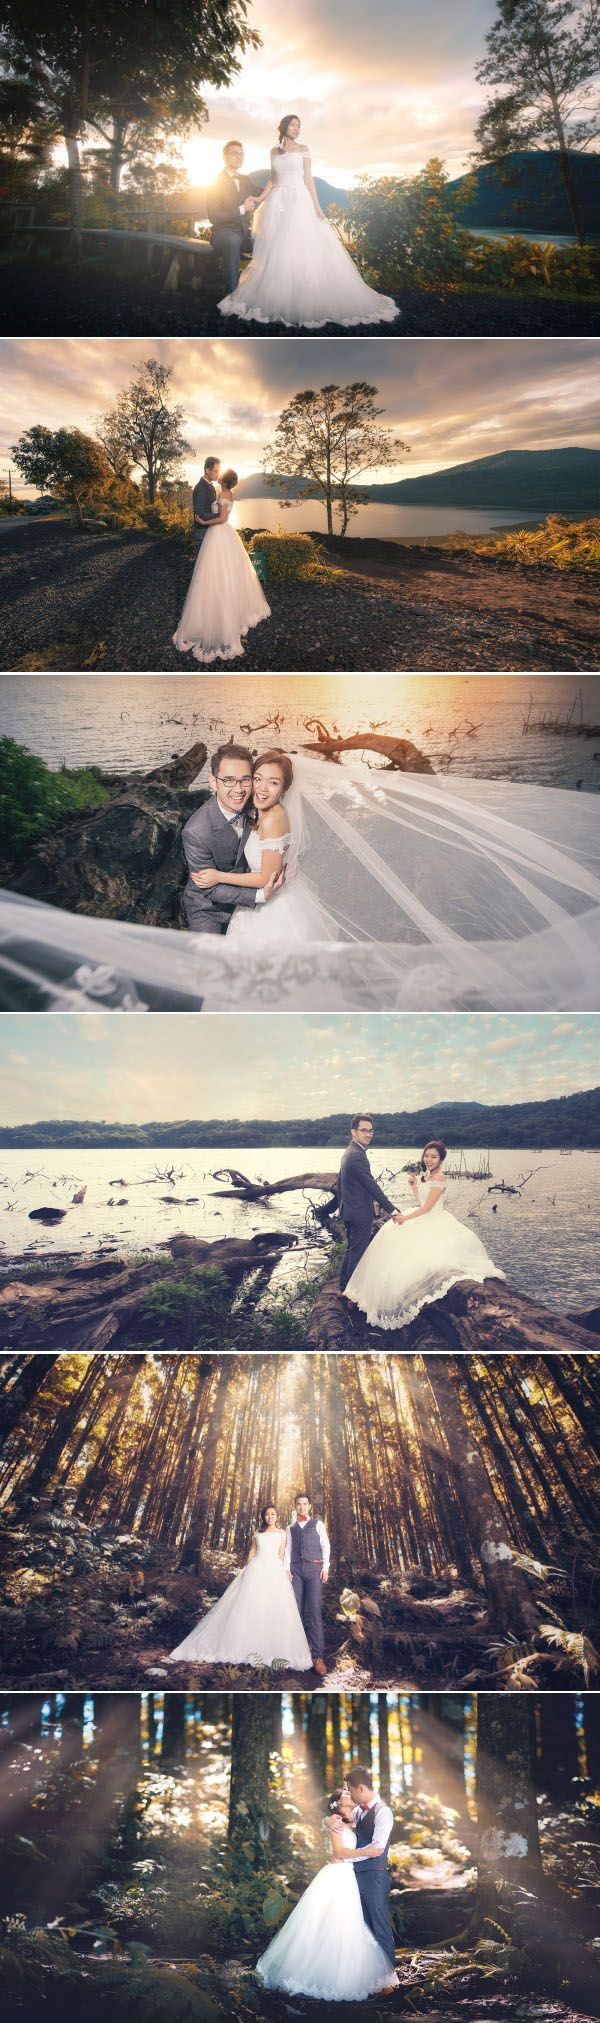 Prewedding photo session in the woods of Kintamani // Pat Law Photography // http://www.onethreeonefour.com/listing/PatLawPhotography/559e975ac75a109b414725e9